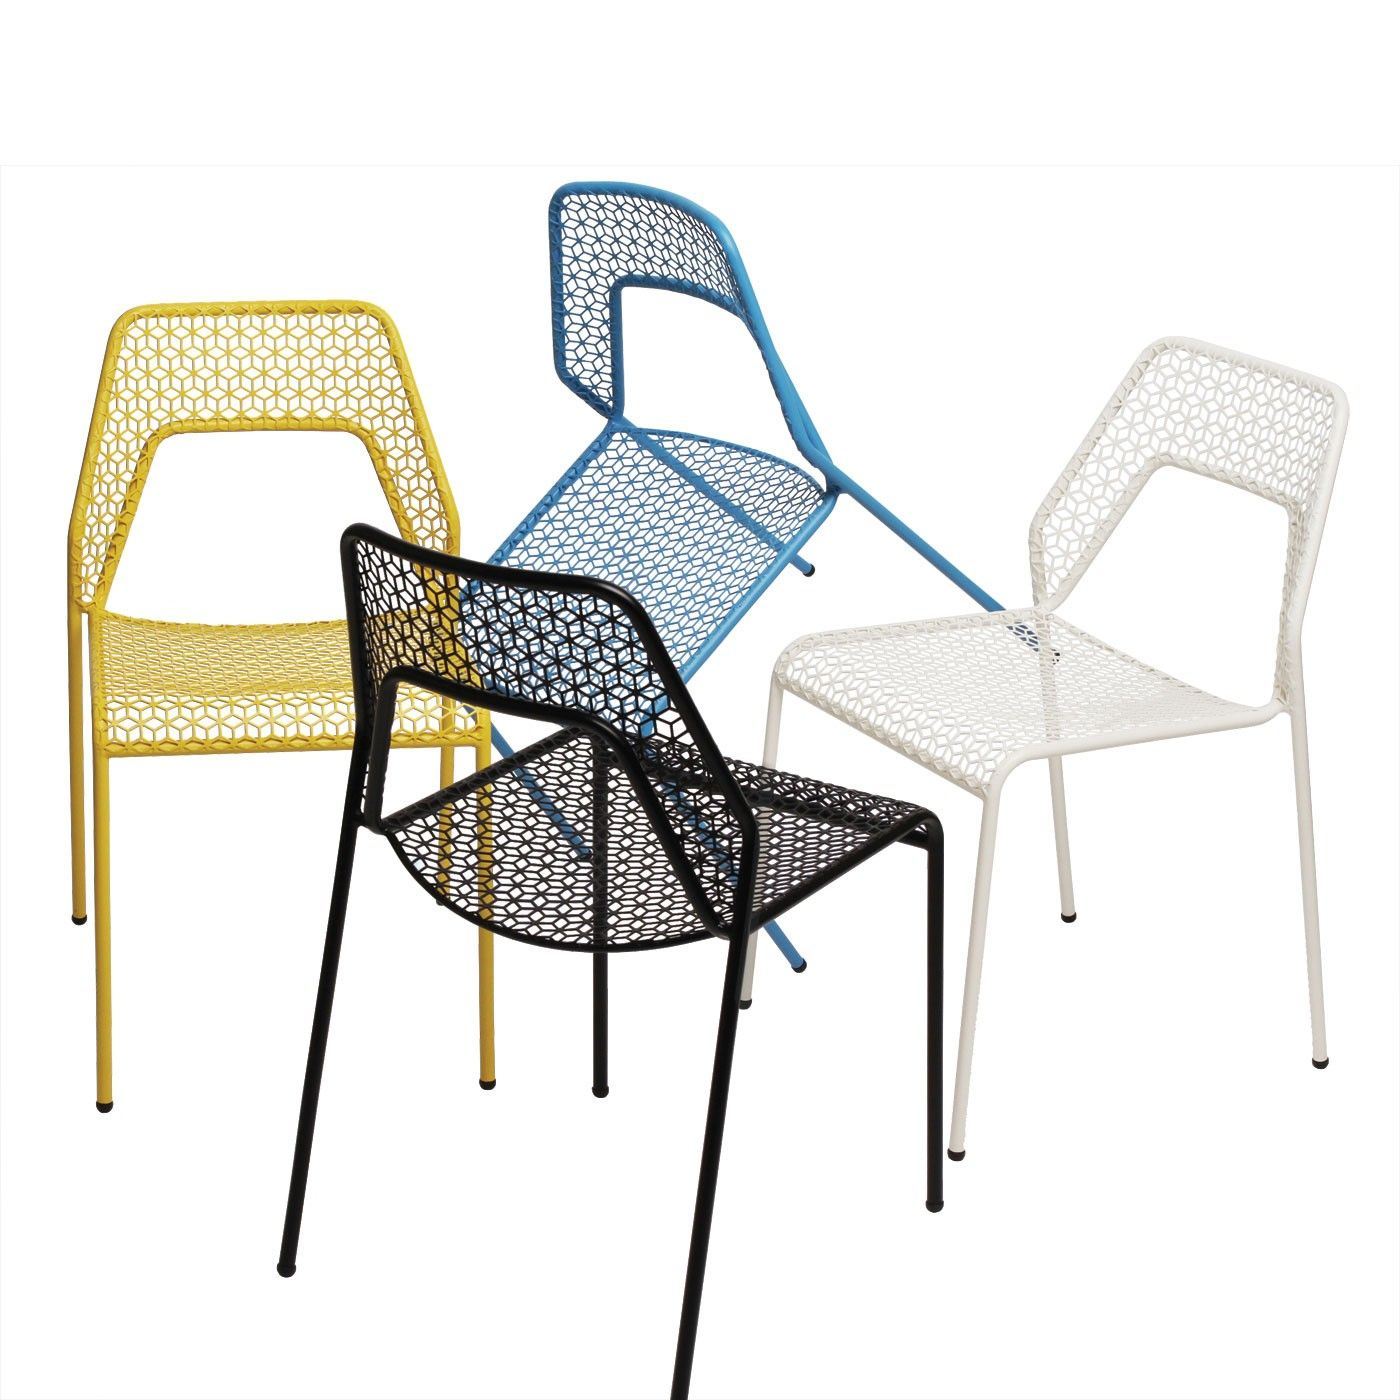 Outdoor Chairs For Pairing With Zen Table. So Fun! Modern Chair   Hot Mesh  Indoor/Outdoor Chair By Blu Dot